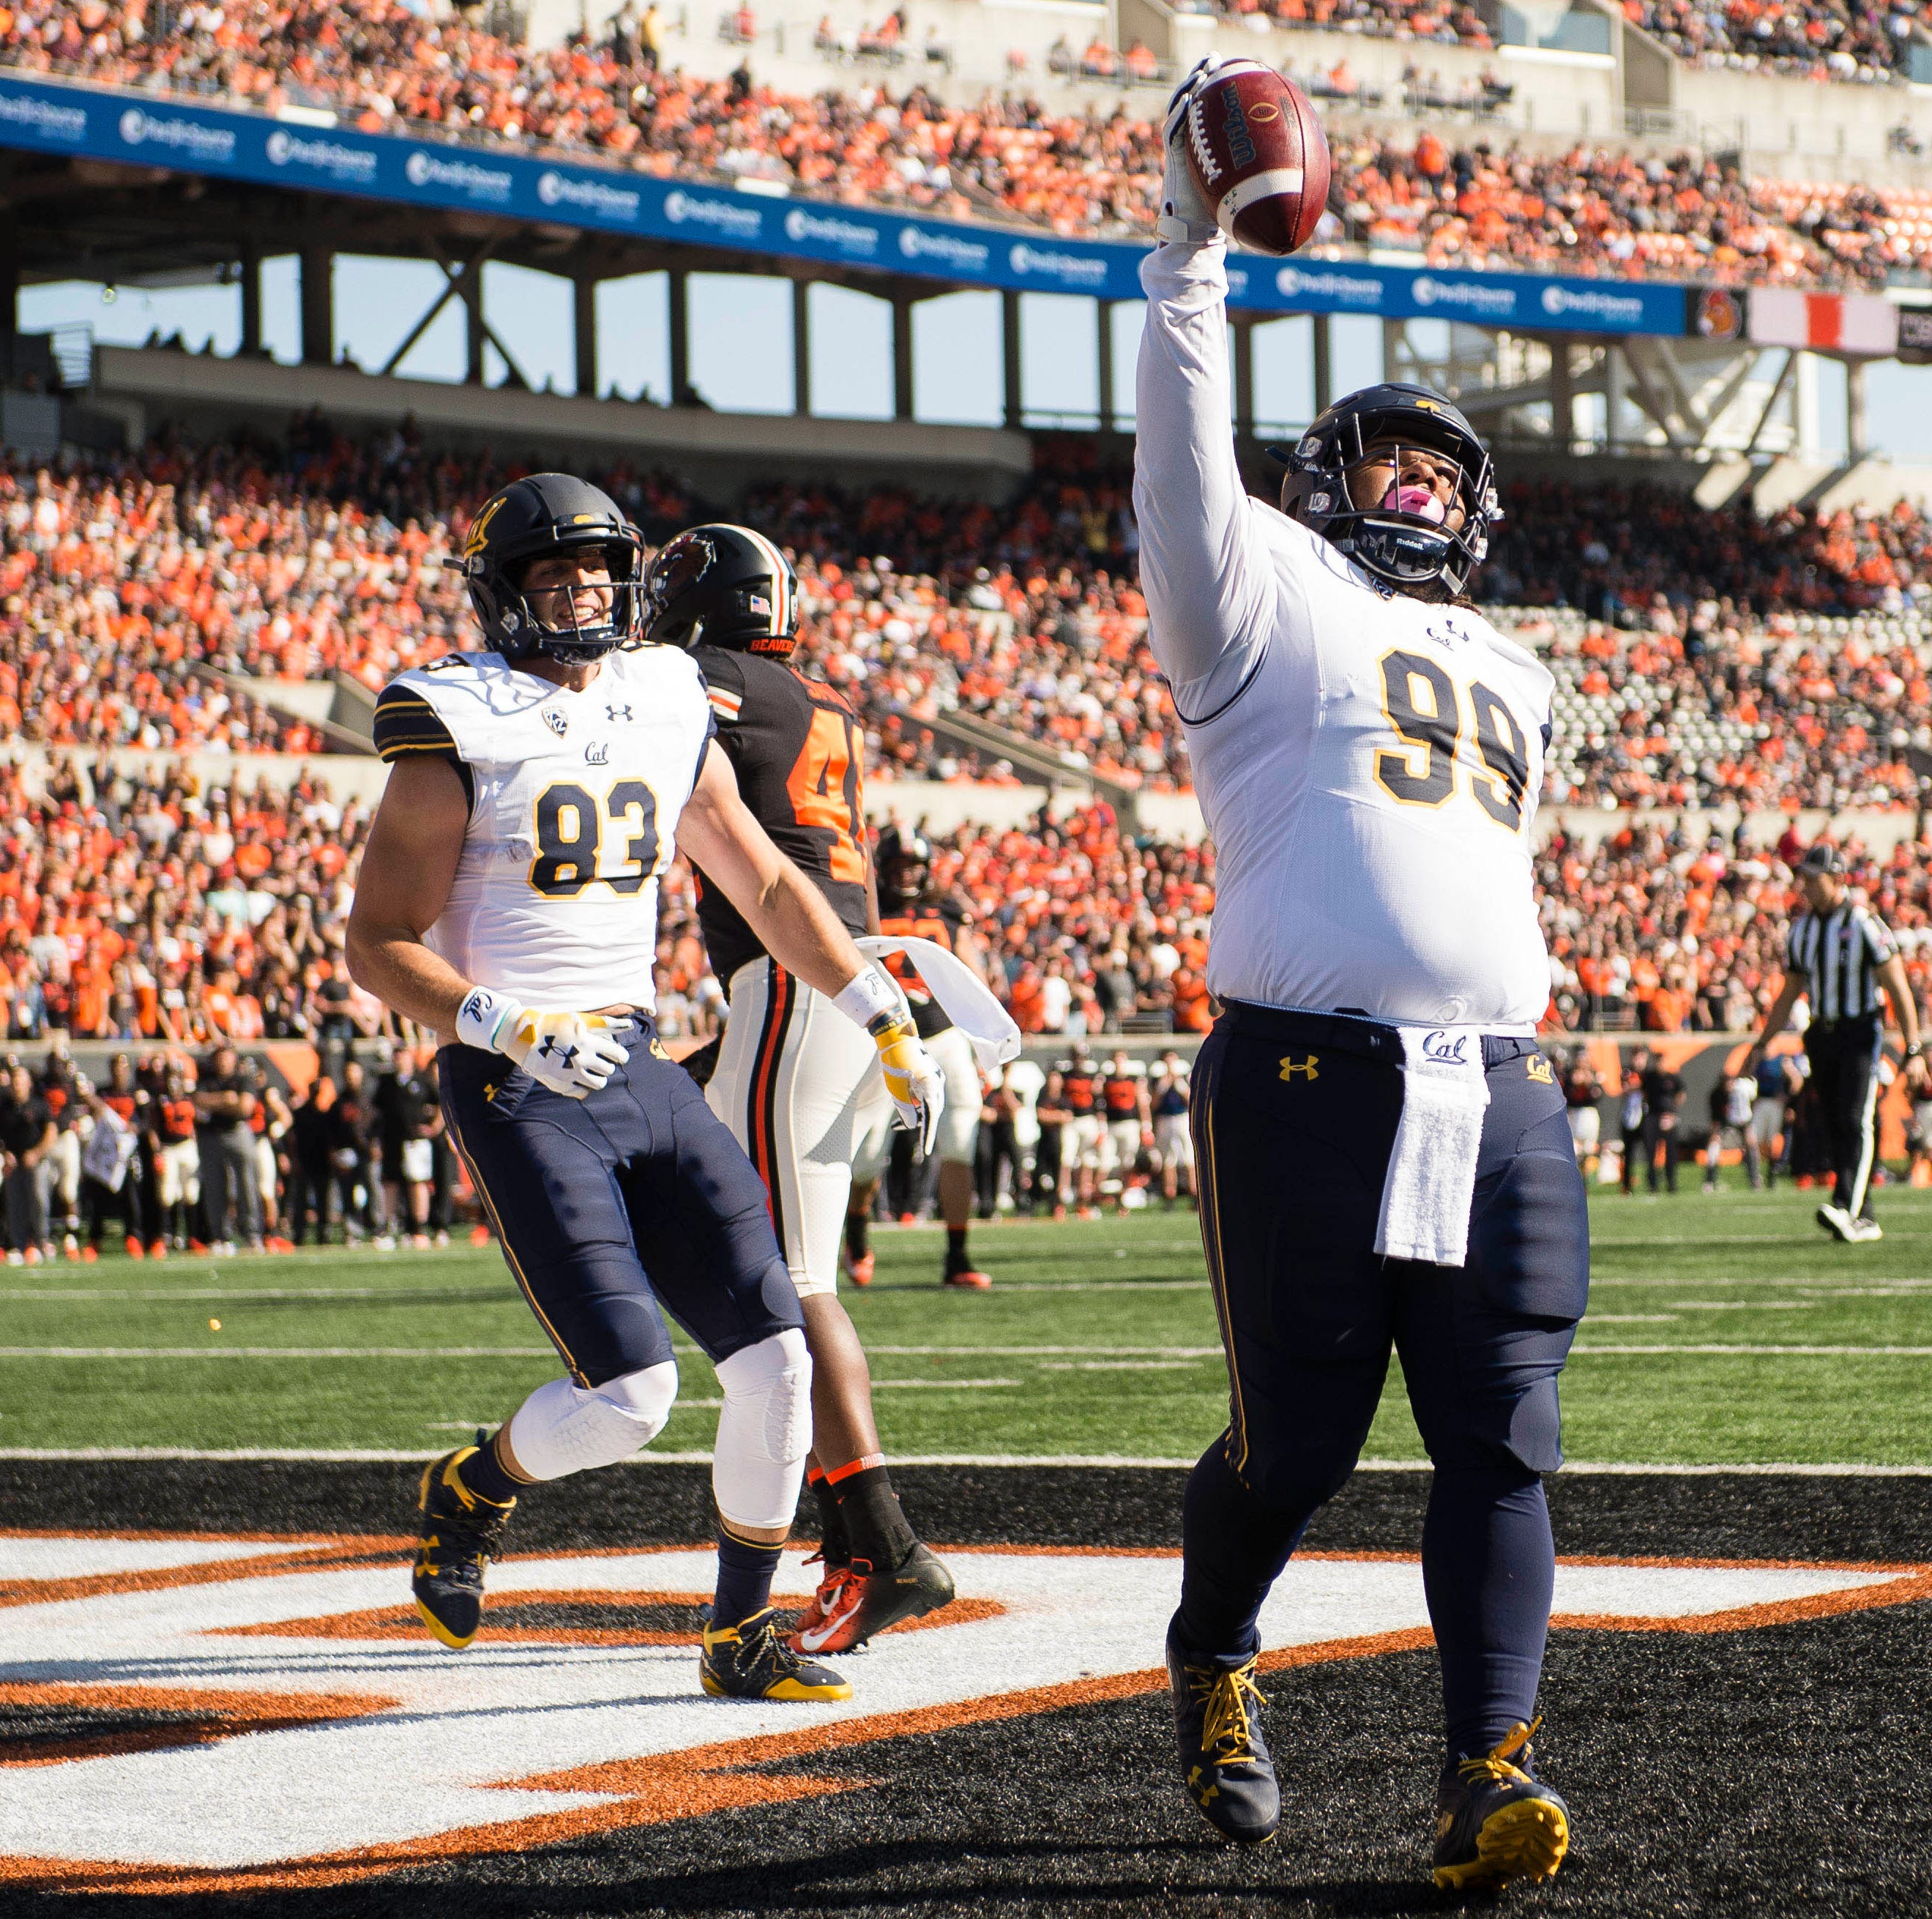 OSU routed by Cal, suffers 13th consecutive Pac-12 defeat